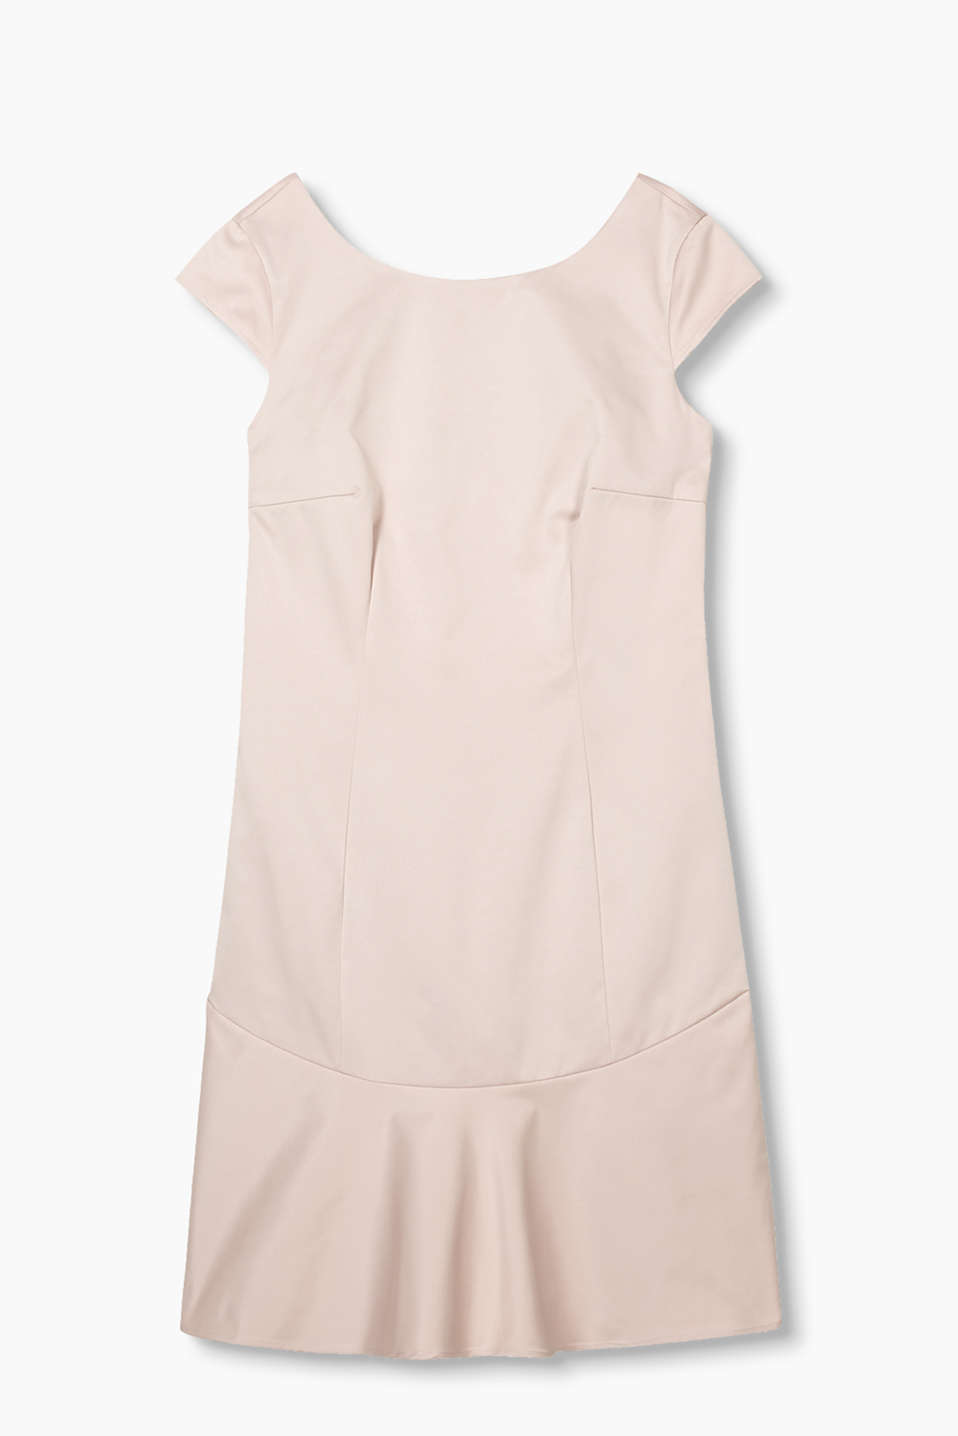 Shiny shift dress in ribbed, firm cloth with a flounce hem